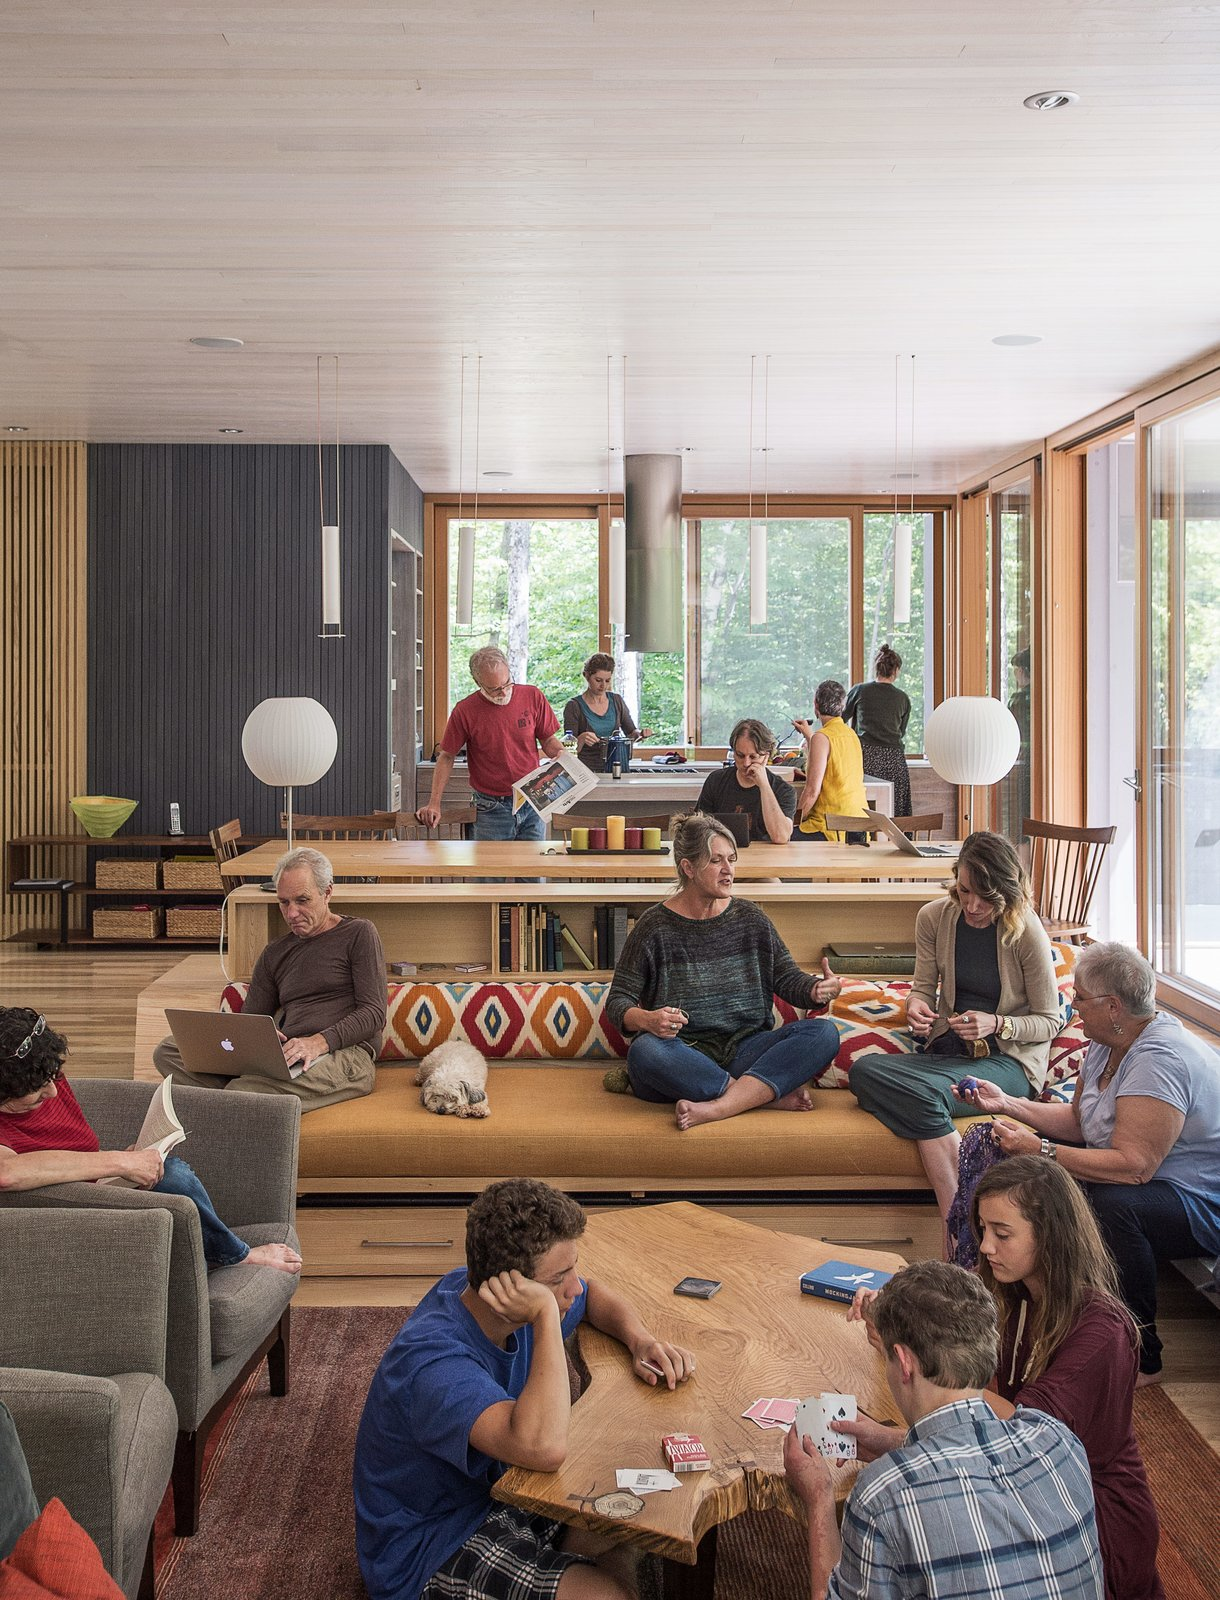 The extended clan, which includes about two dozen members, collaborated with Gray Organschi Architecture to design an inclusive home for three generations. Tagged: Living Room, Bench, Chair, Sofa, Coffee Tables, Ceiling Lighting, Table Lighting, and Recessed Lighting.  Examples of Modern Communal Living by Megan Hamaker from It Took a Whole Family to Build This House